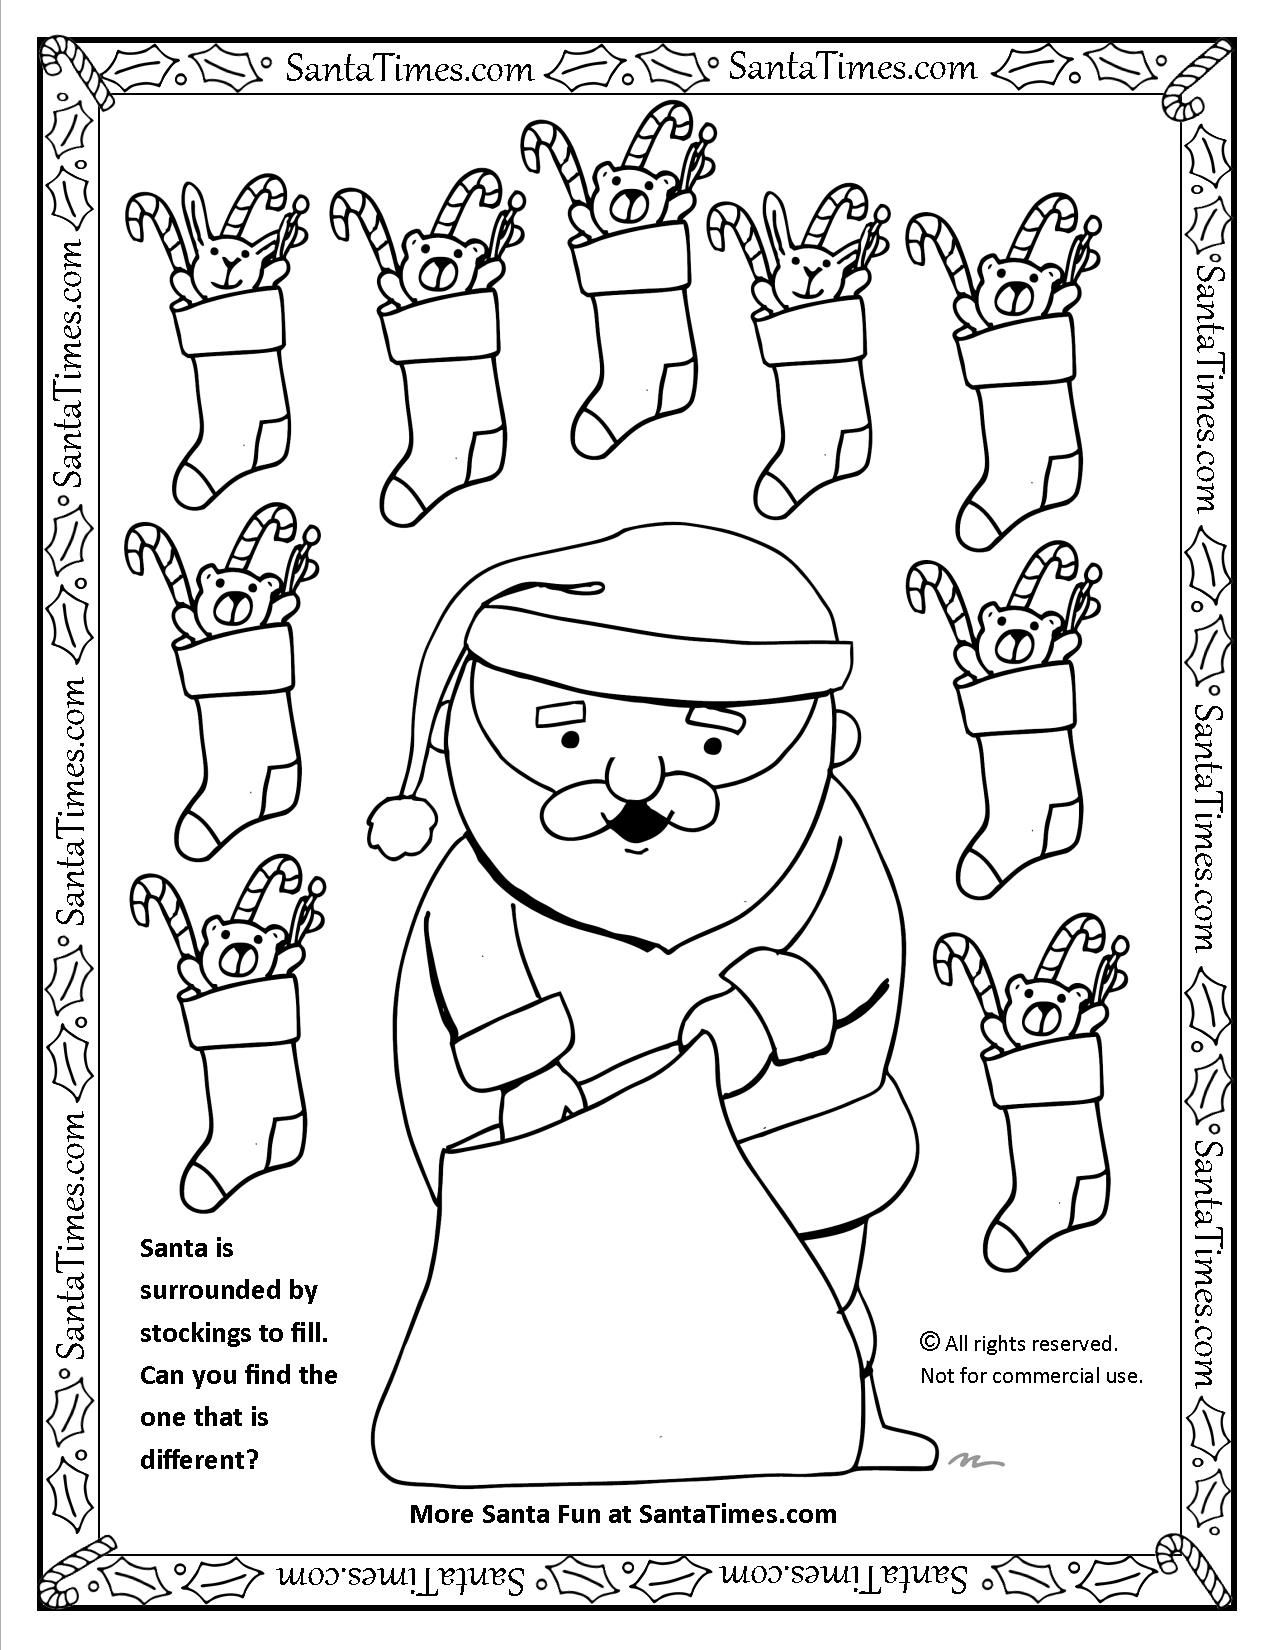 Santa Fills Stockings Christmas Activity and printable ...